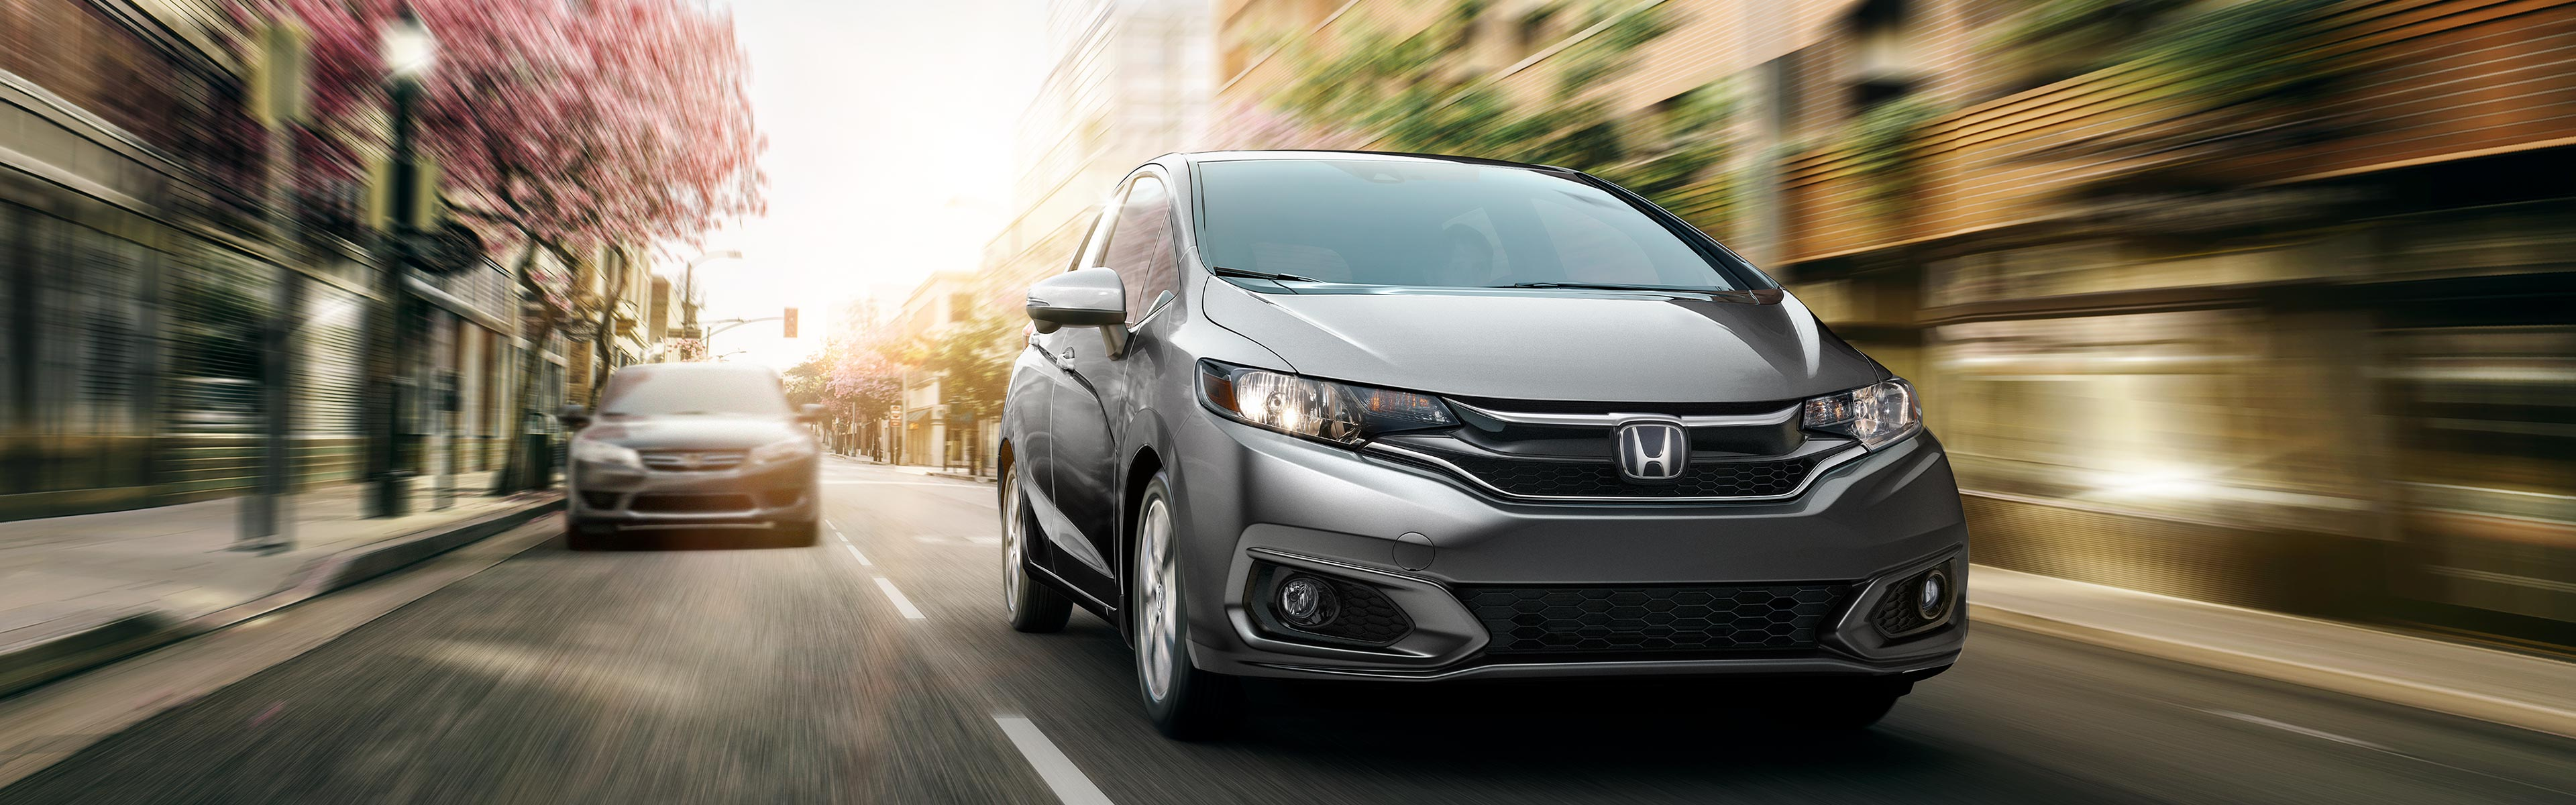 Image of grey 2018 Honda Fit